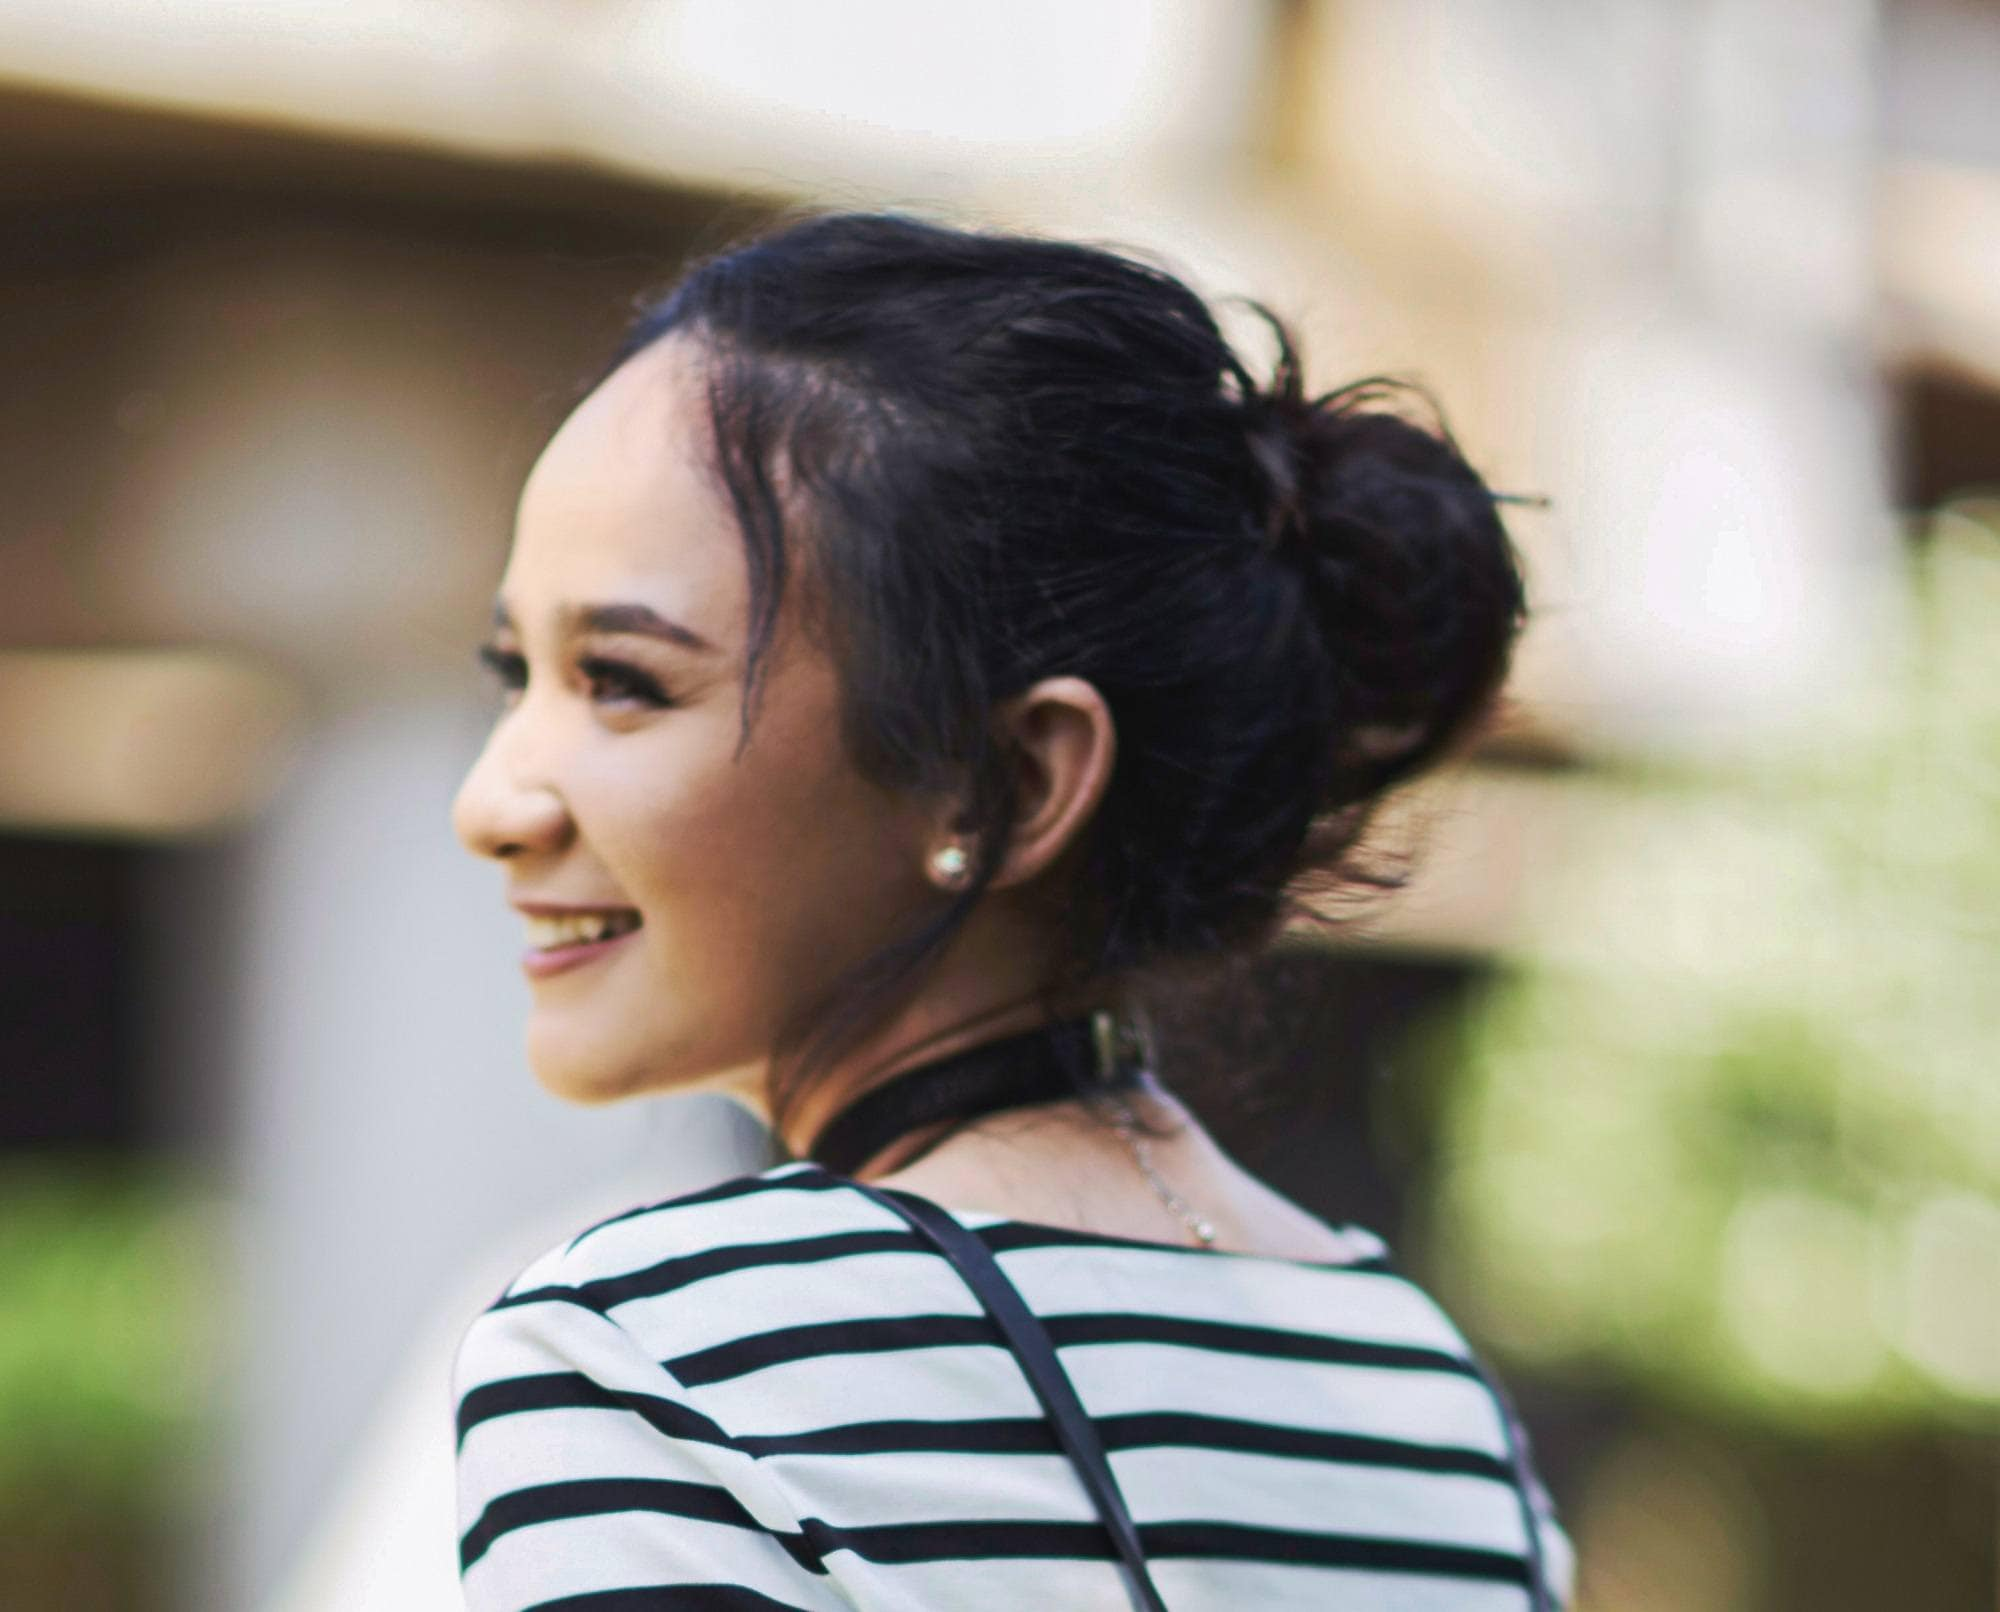 Easy commuter-friendly hairstyles: Closeup shot of an Asian woman with black hair in a messy bun wearing striped shirt outdoors